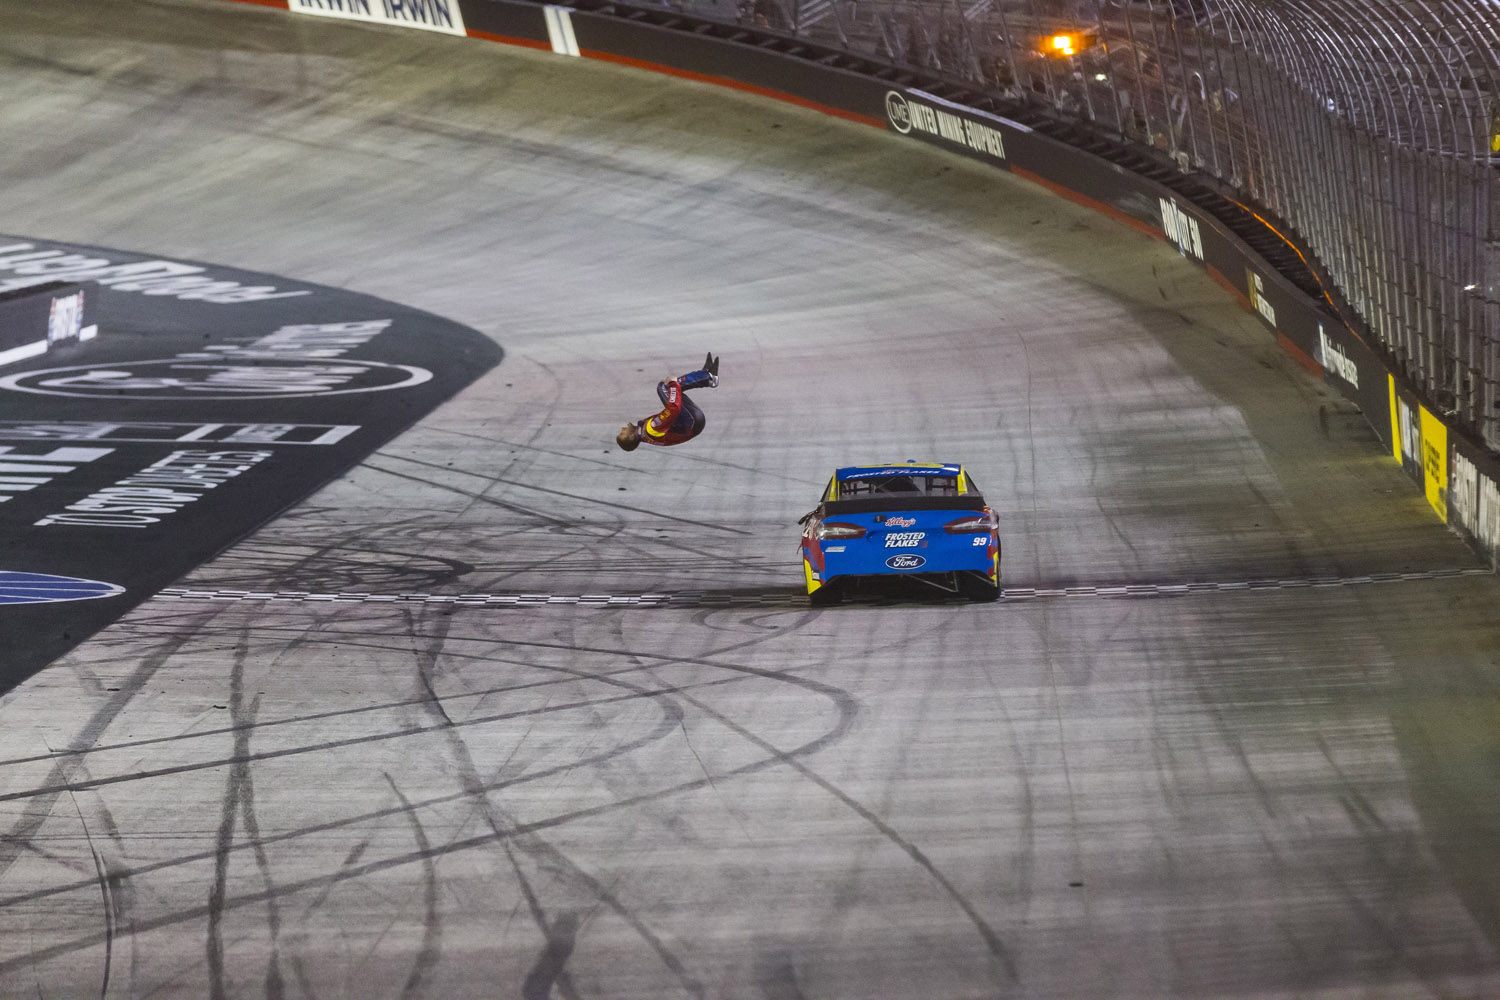 Mar. 16, 2014 - Driver Carl Edwards does a back flip off after winning the Sprint Cup series Food City 500 at Bristol Motor Speedway.